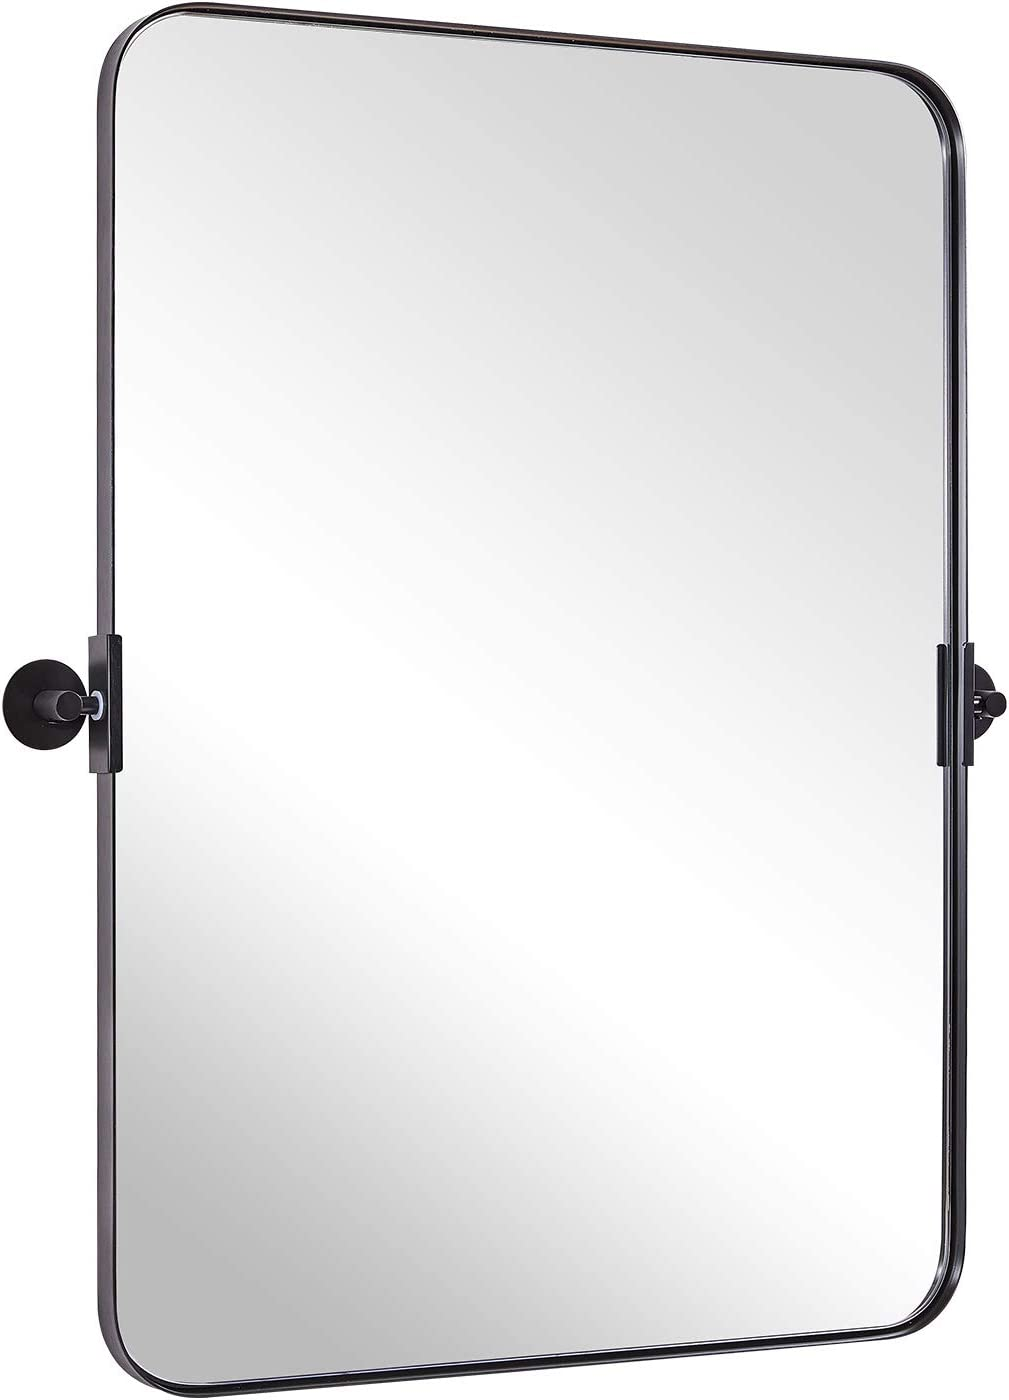 Buy Moon Mirror 22 X 30 Matte Black Pivot Mirror For Bathroom Metal Frame Bathroom Mirrors For Wall Rectangle Titling Vanity Wall Mirror With Rounded Corner Design Hangs Vertical Online In Vietnam B096tvnly3